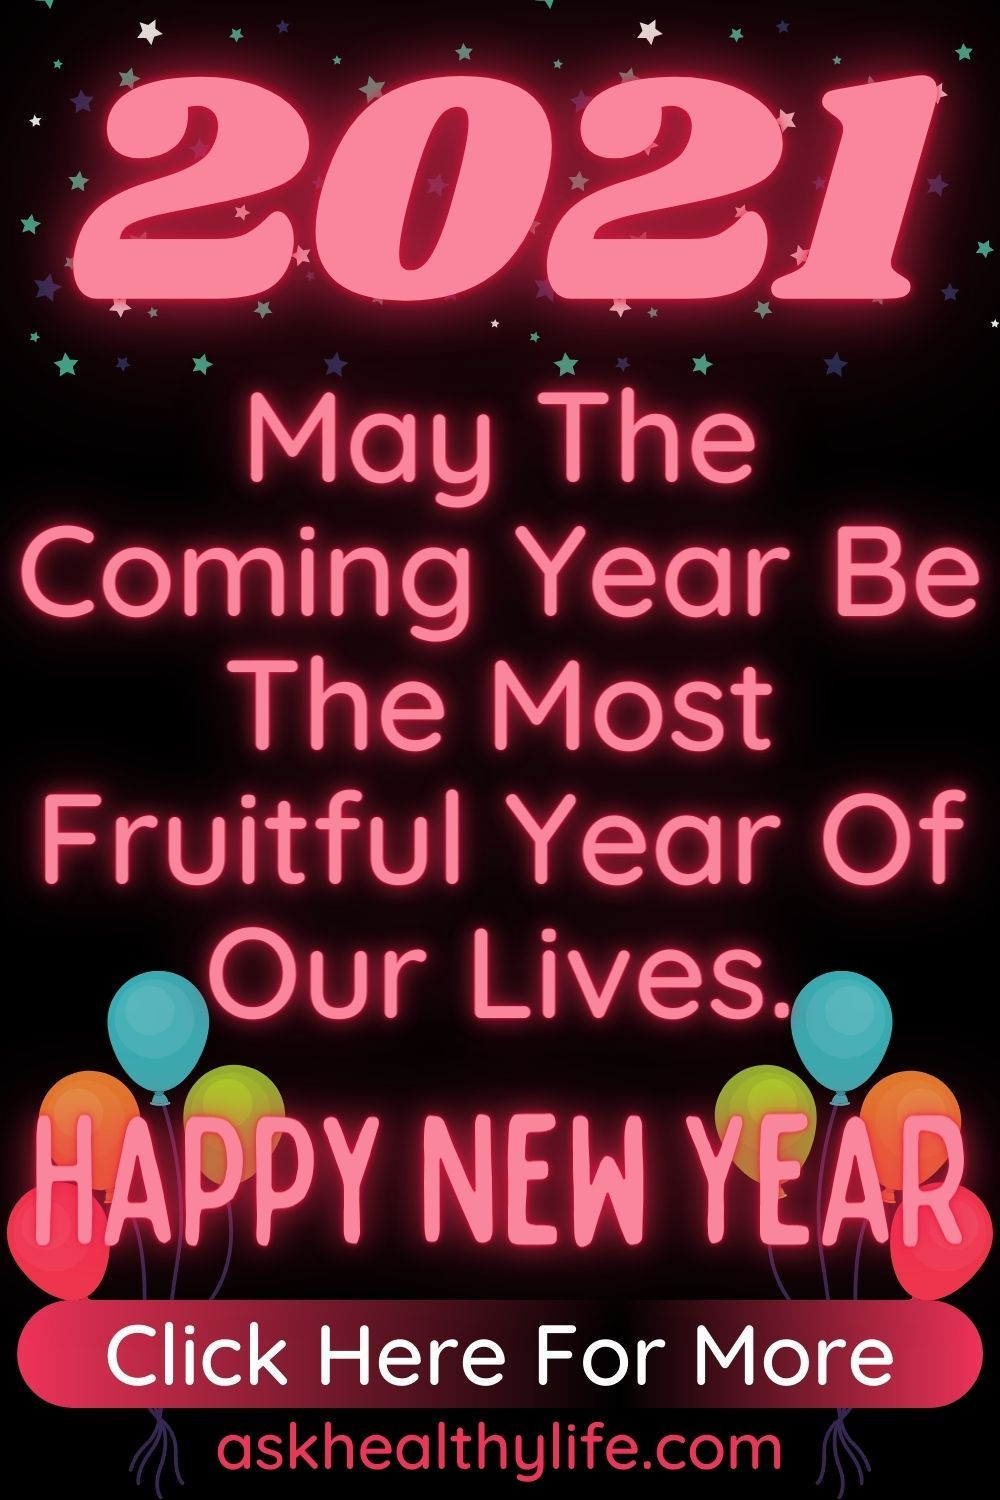 32 Happy New Year 2021 Quotes Wishes May The Coming Year Be The Most Fruitful Year Of Happy New Year Quotes Happy New Year 2021 Quotes New Year 2021 Quotes